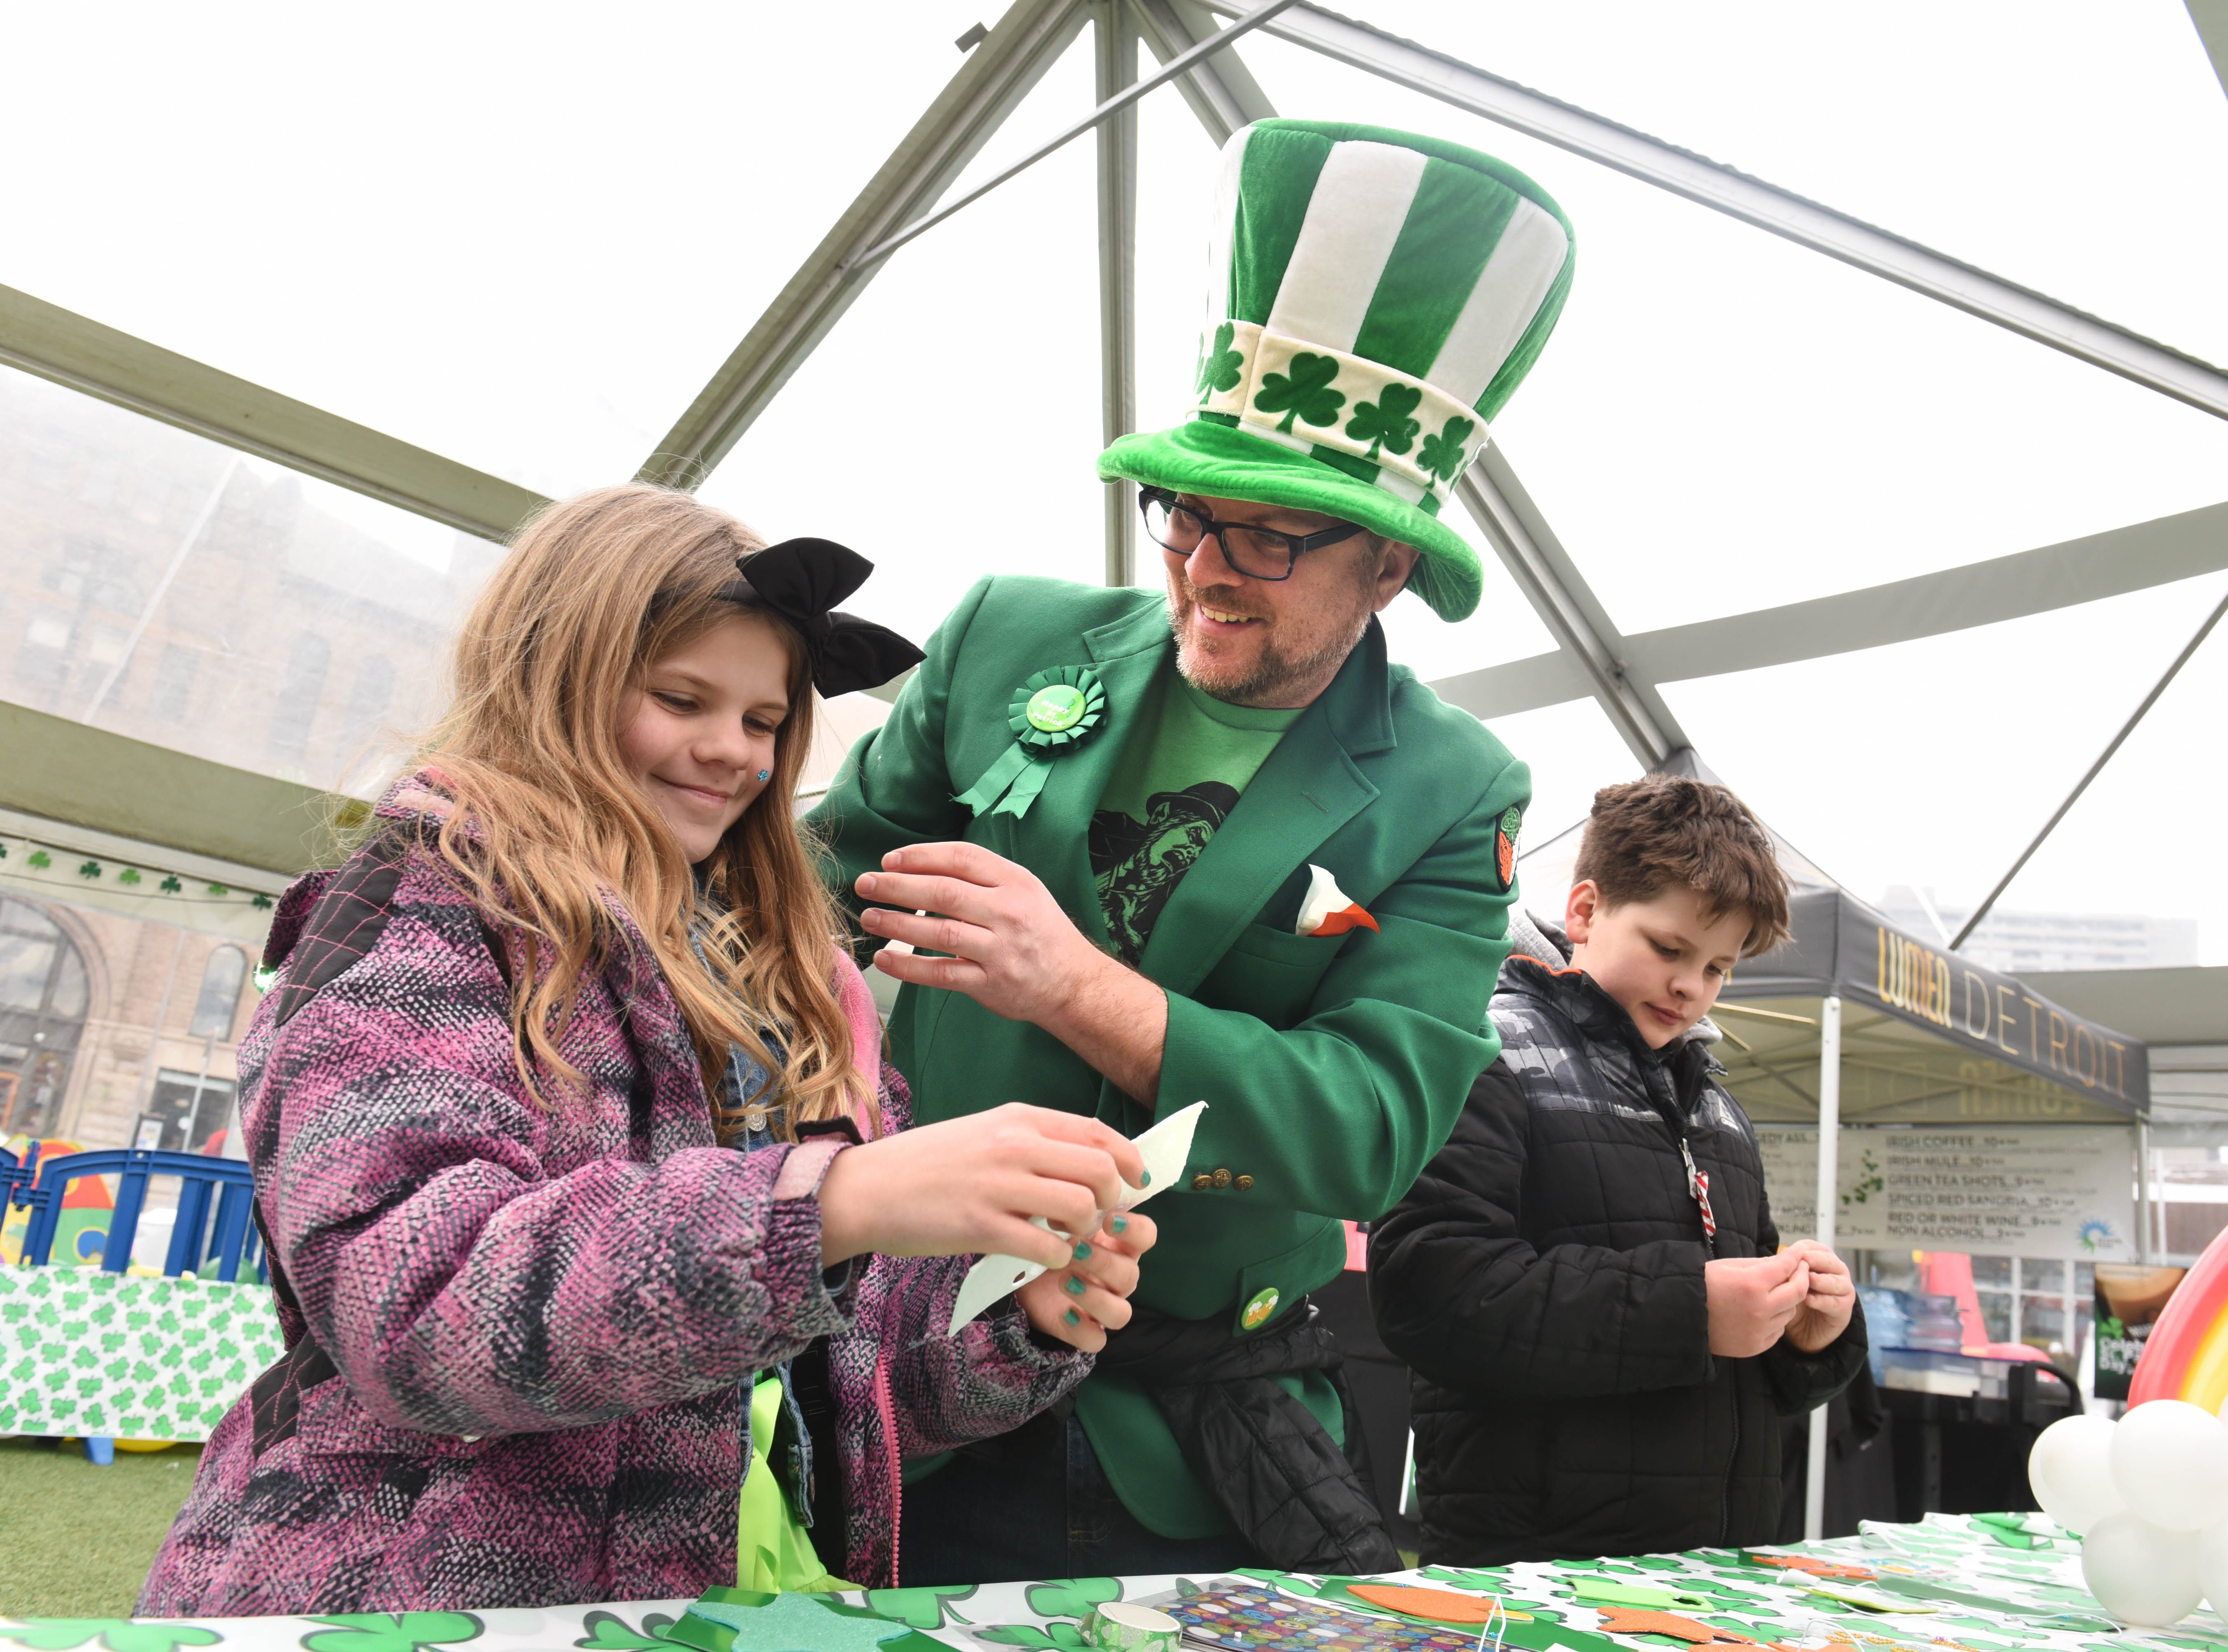 Scott Schommer, center, dressed head to toe in his best  St. Patrick's Day costume has fun with Madeline Schommer, left, and Lucas Schommer at the St. Patrick's Day Party at Beacon Park on Saturday, March 16, 2019.